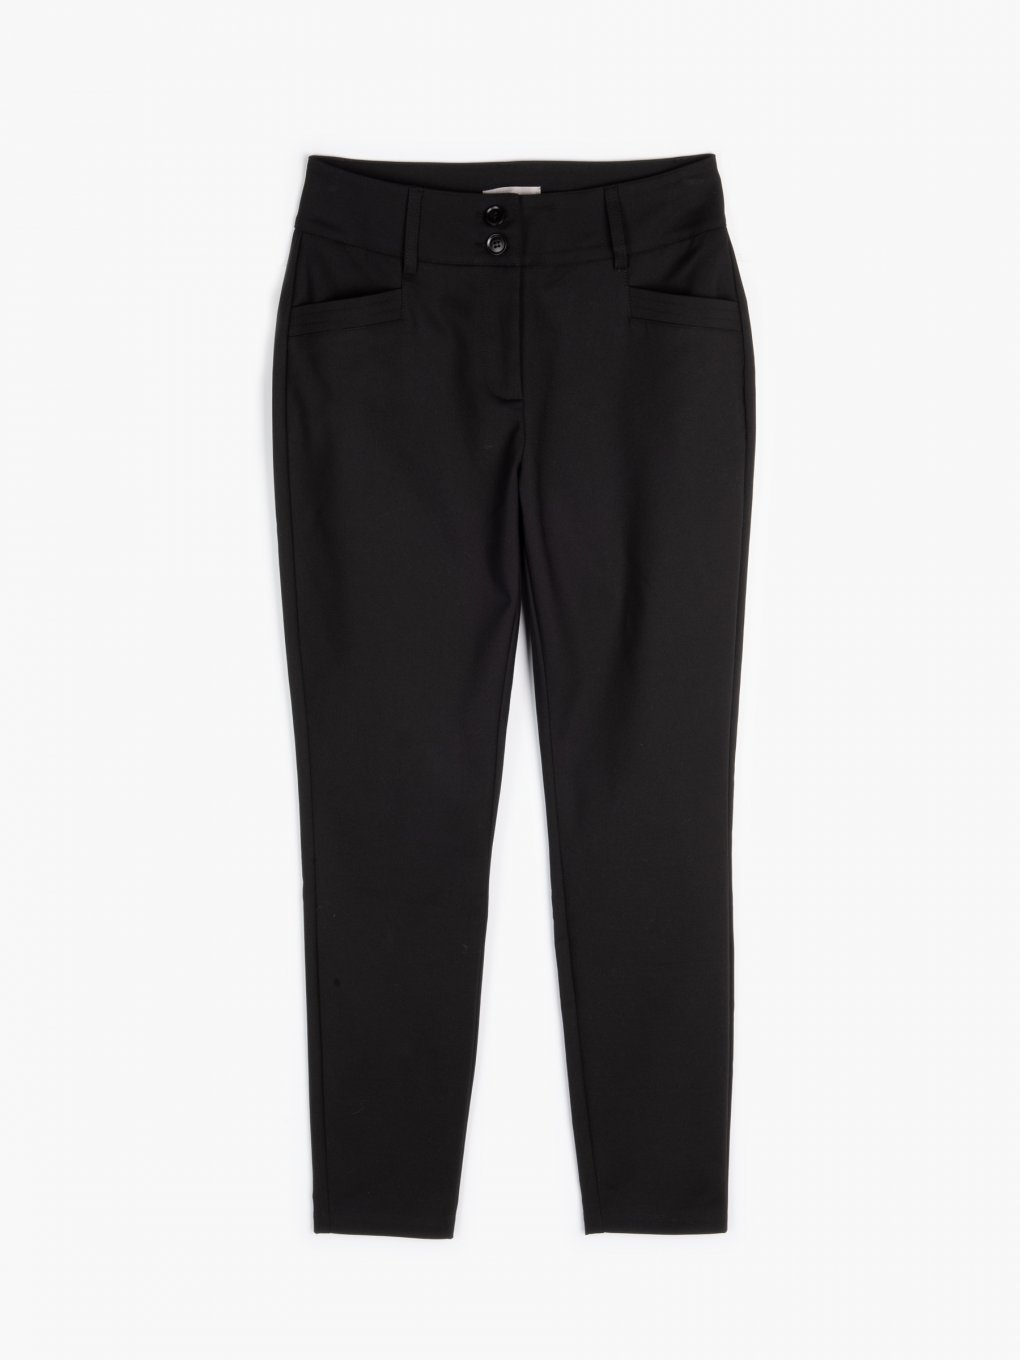 Strech trousers